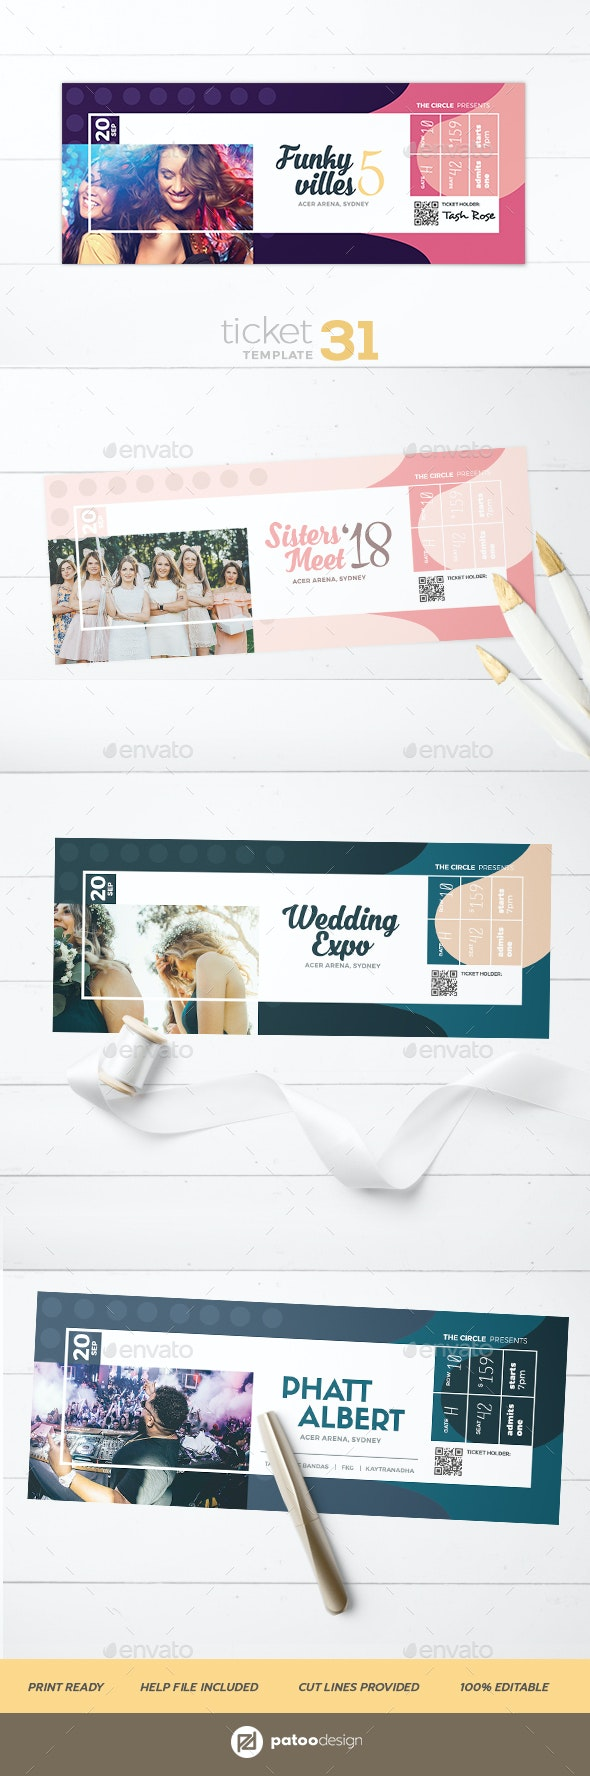 Event Tickets 31 - Miscellaneous Print Templates